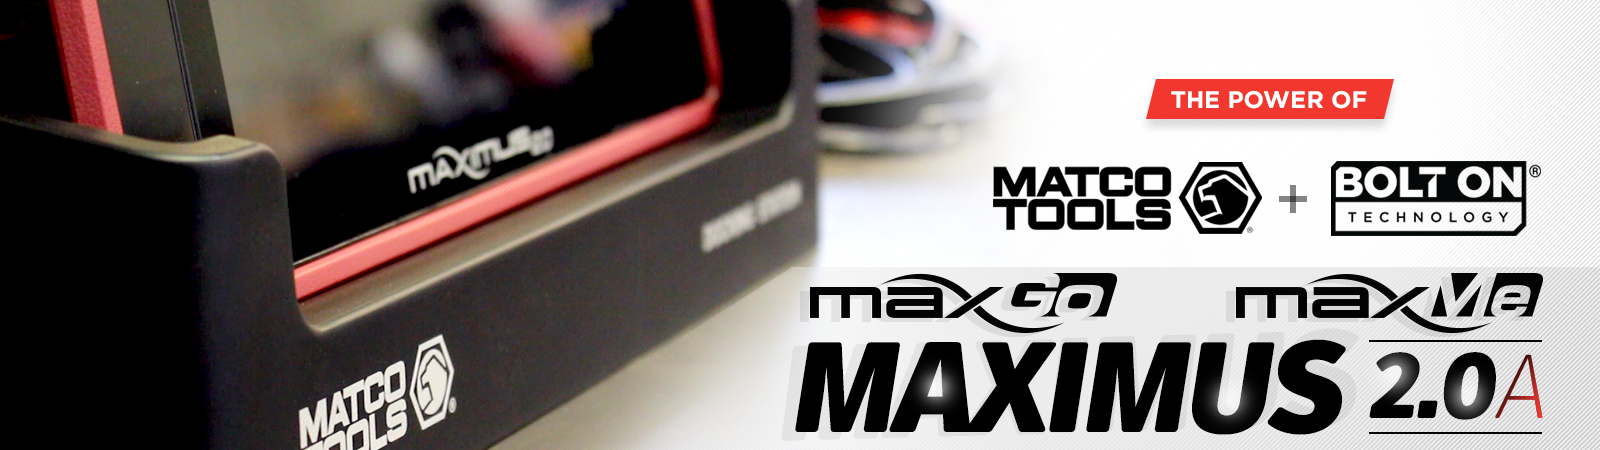 Matco Maximus Now Has Digital Vehicle Inspections from BOLT ON